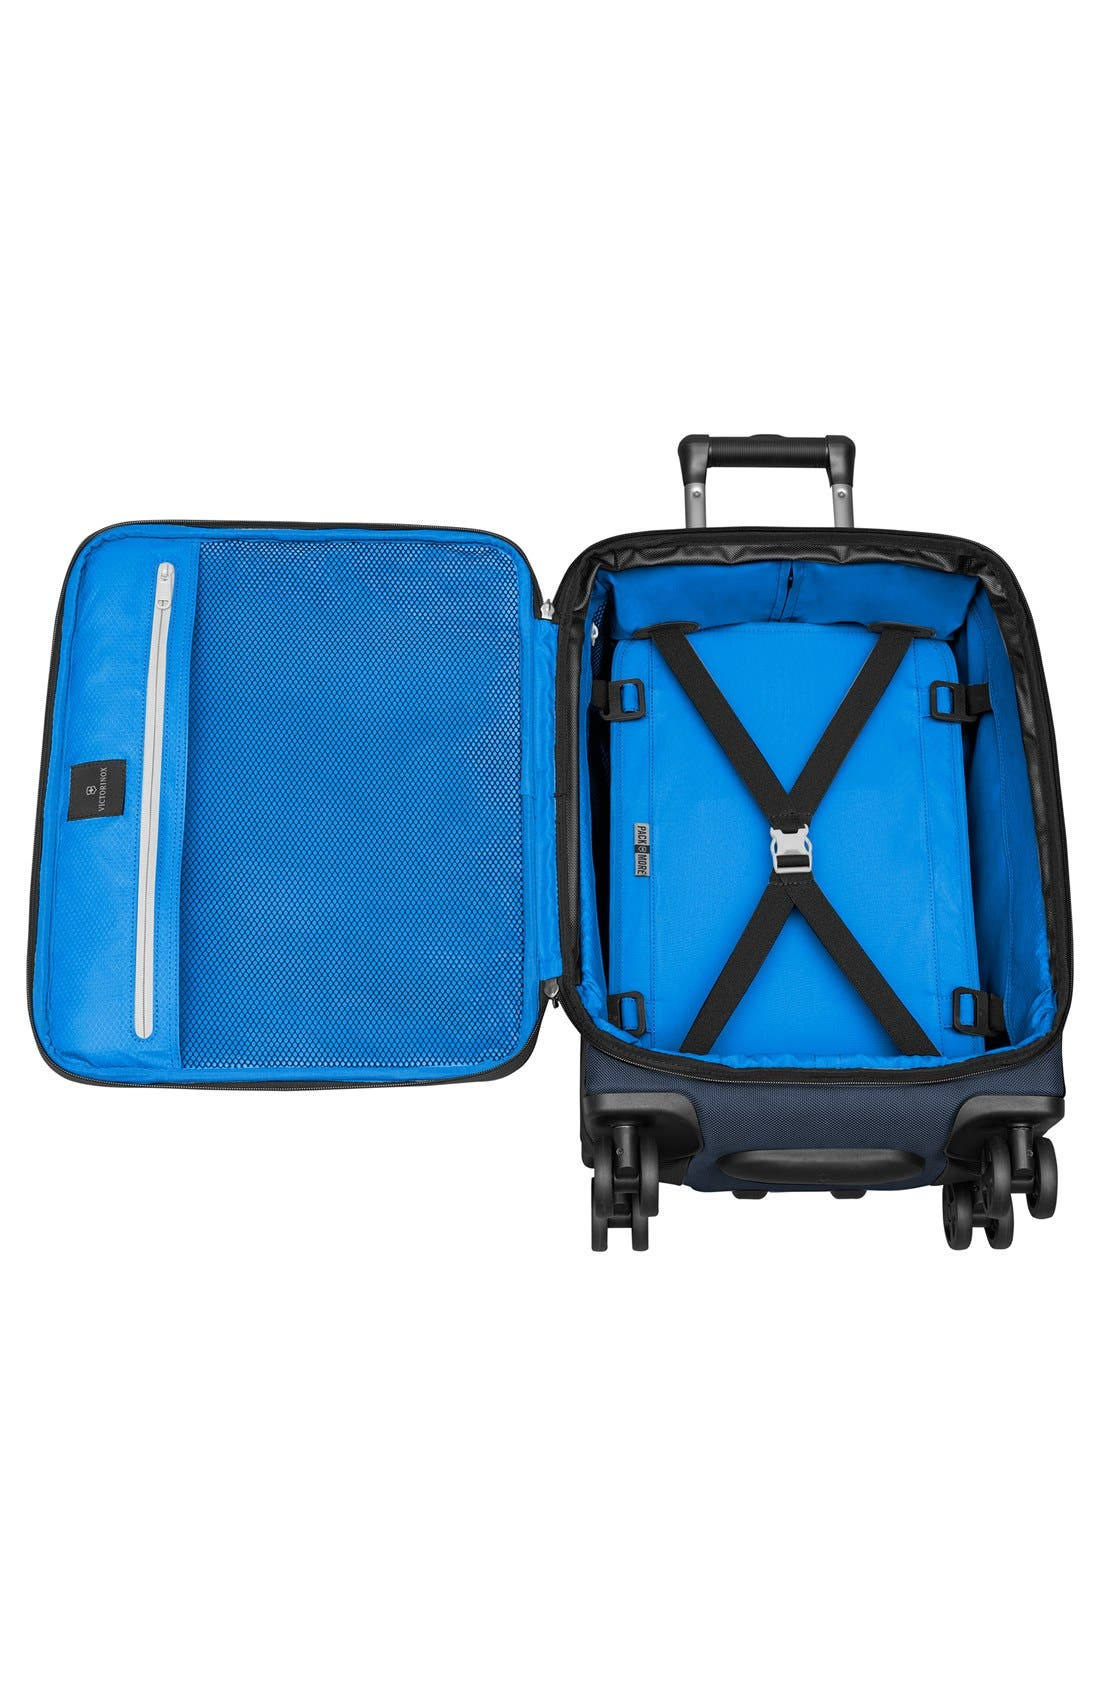 WT 5.0 Dual Caster Wheeled 20-Inch Carry-On,                             Alternate thumbnail 2, color,                             420